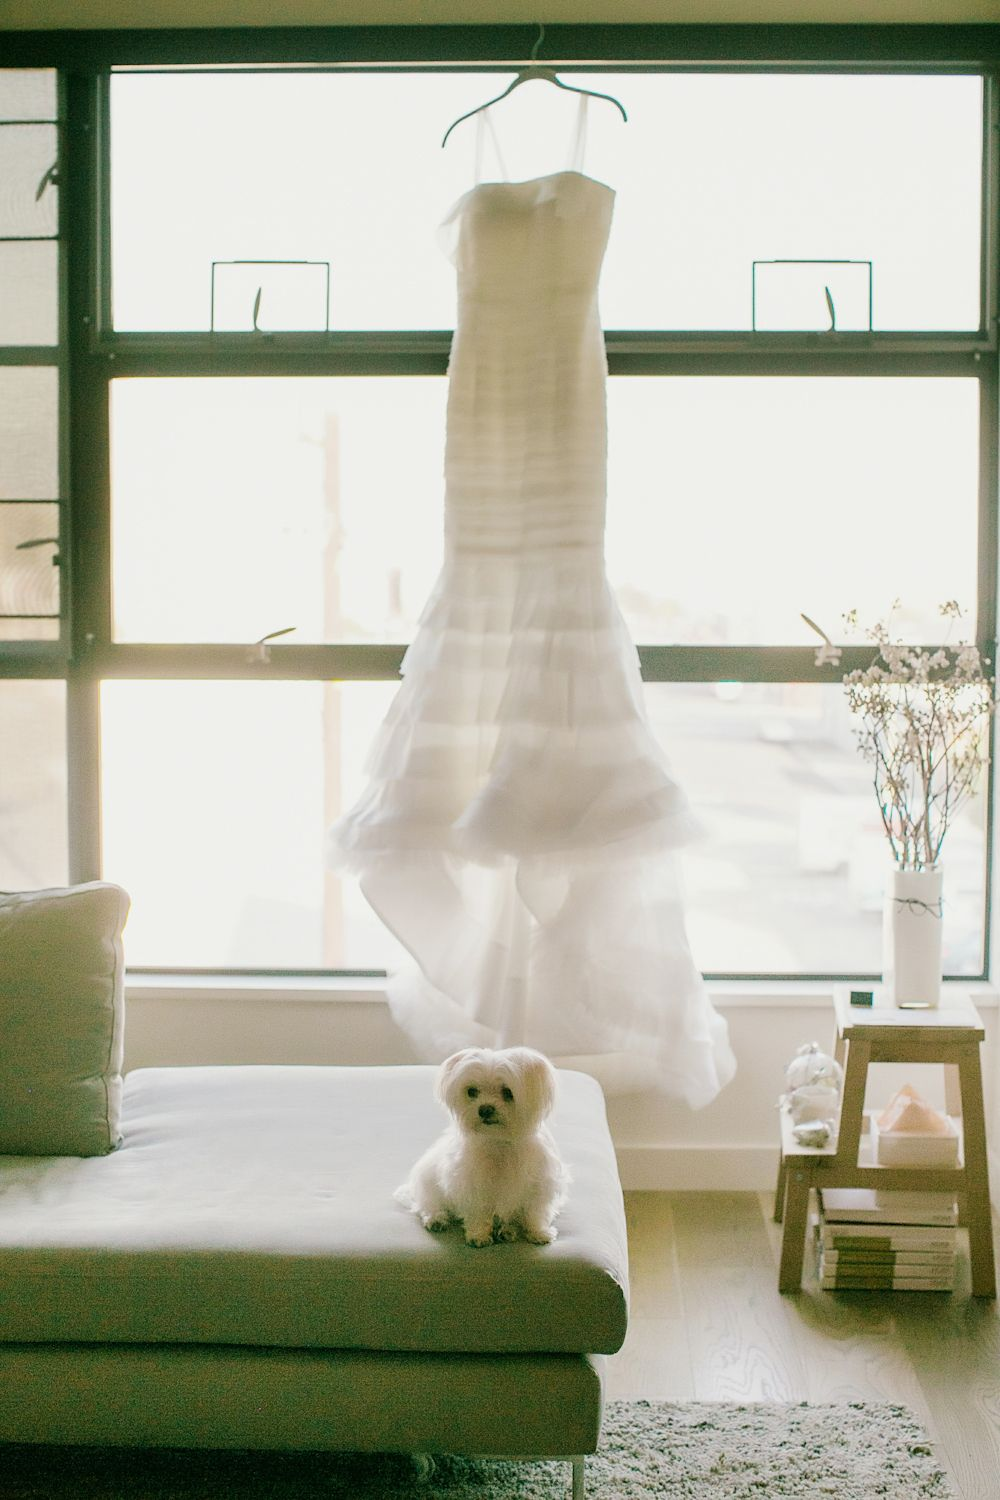 Dogs at Weddings - How to Include Your Dog in Your Wedding